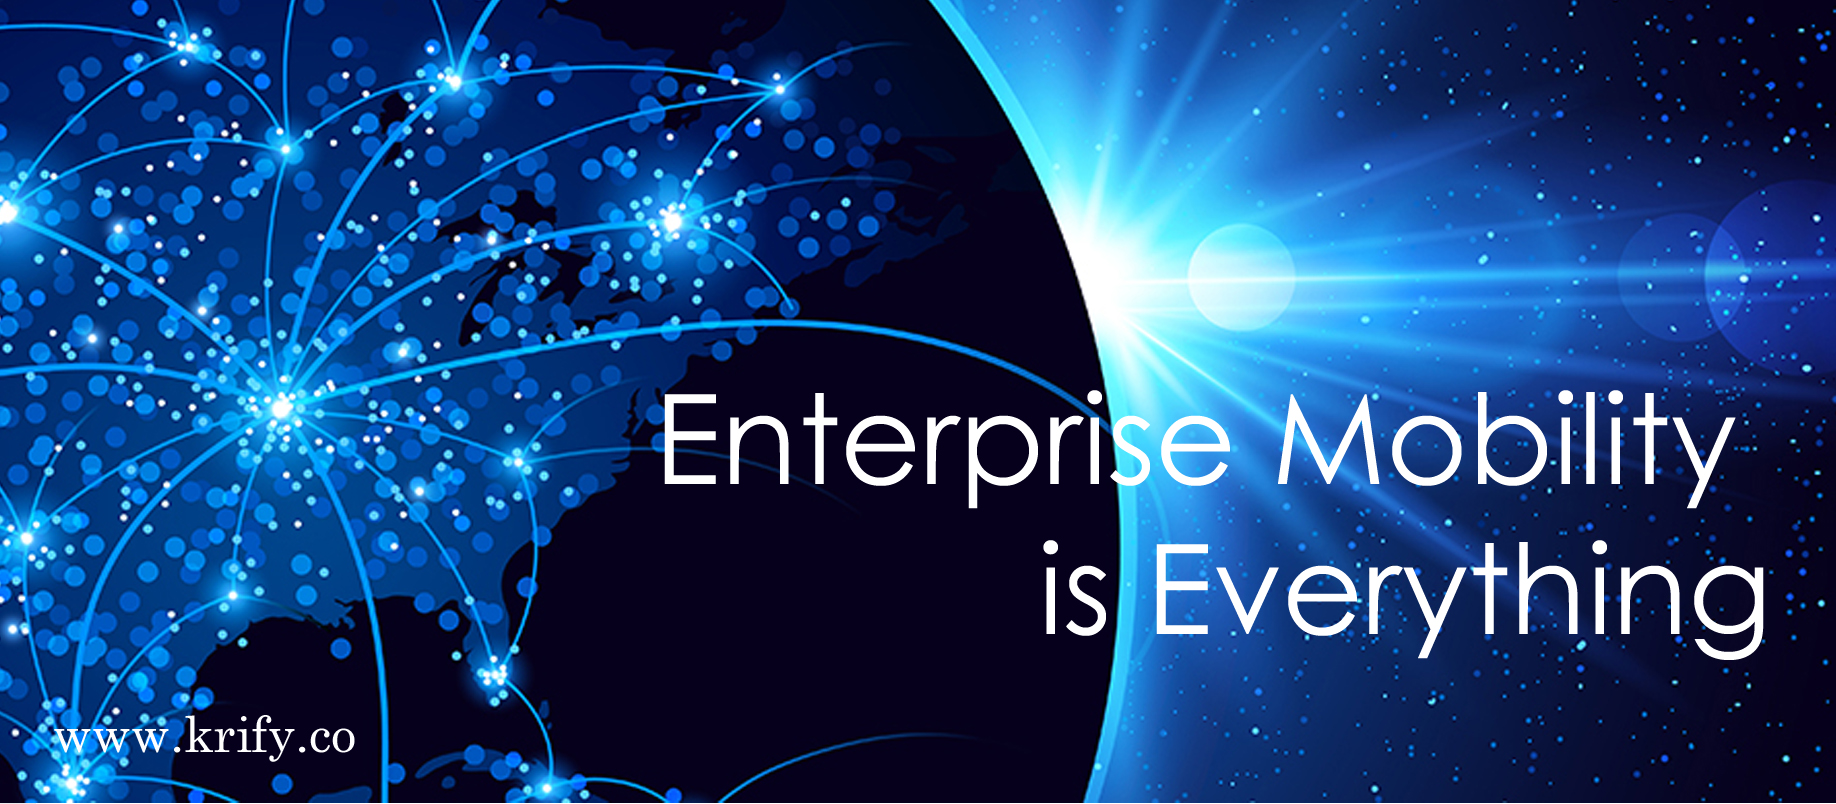 enterprise mobility is everything